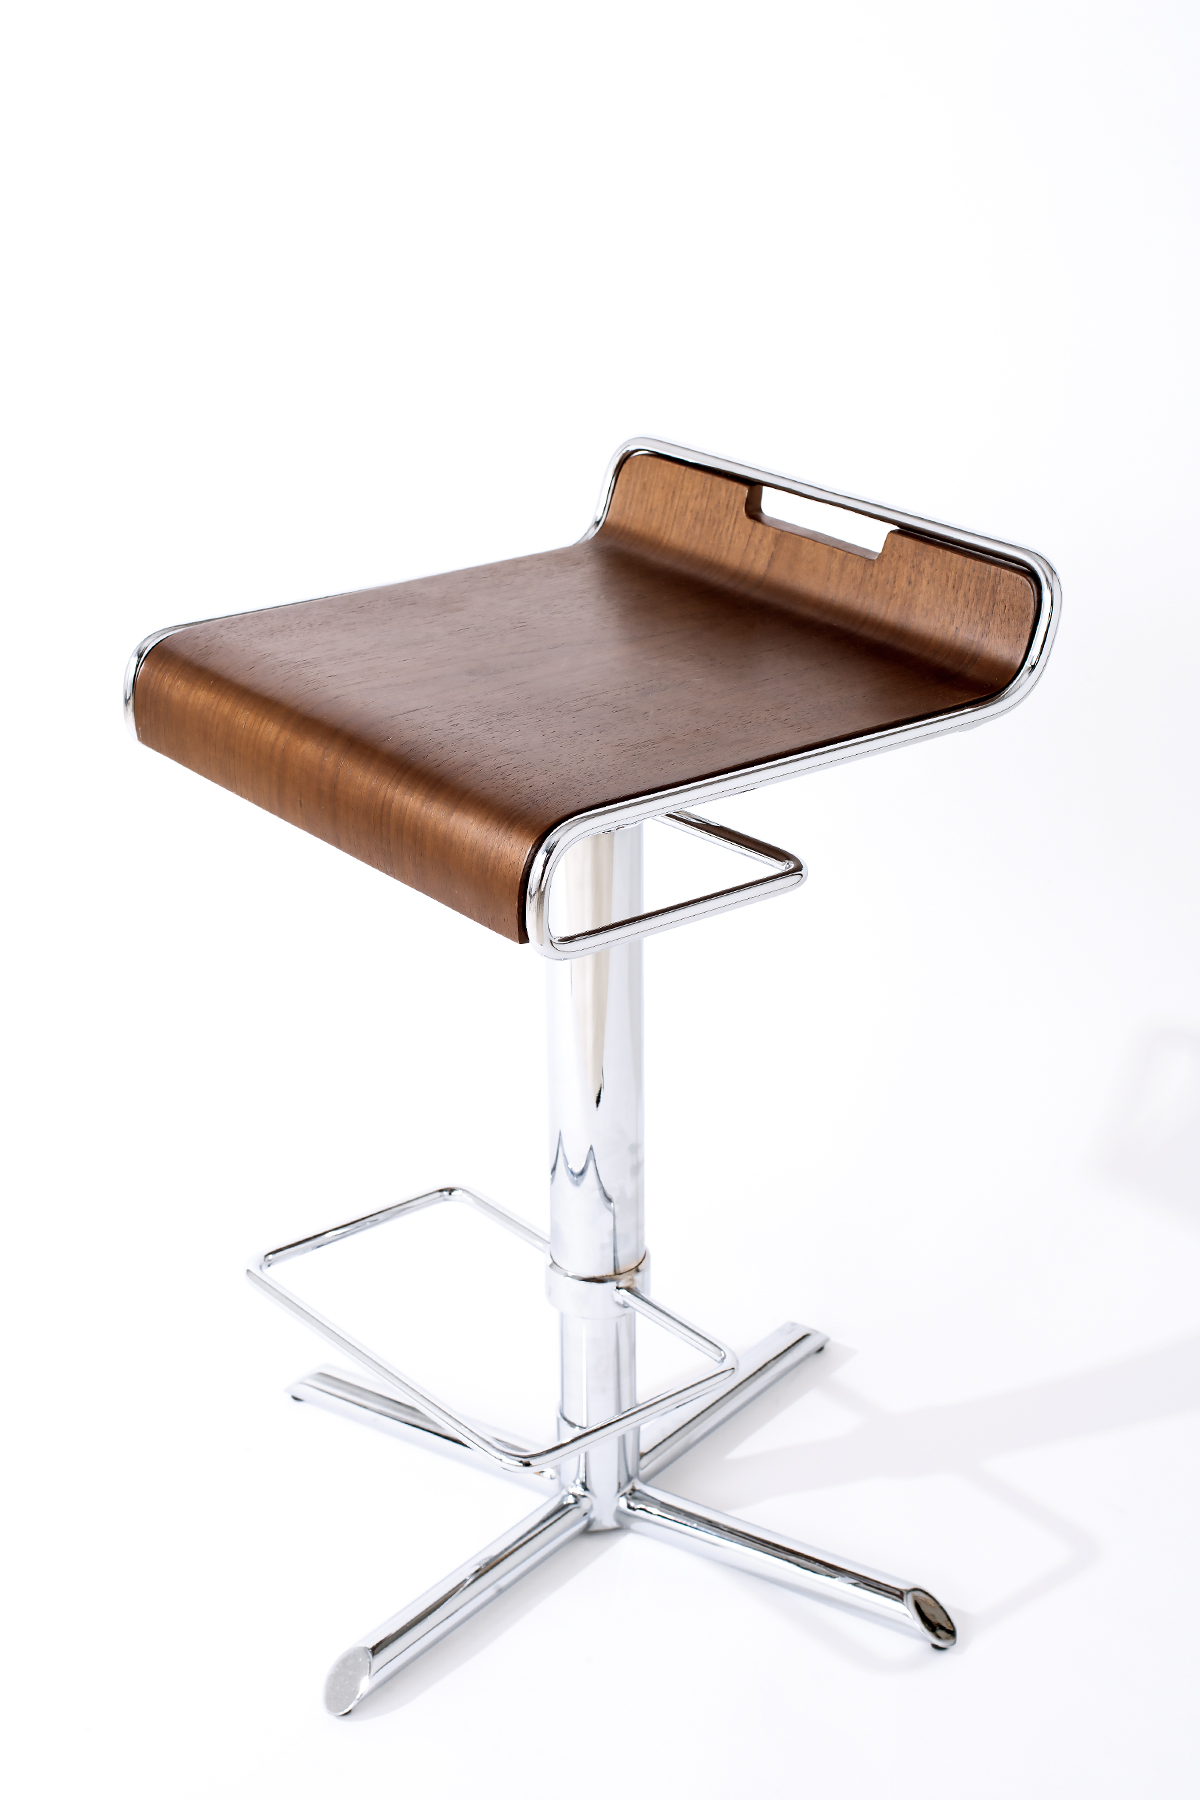 Wood_Chrome_Stool.jpg